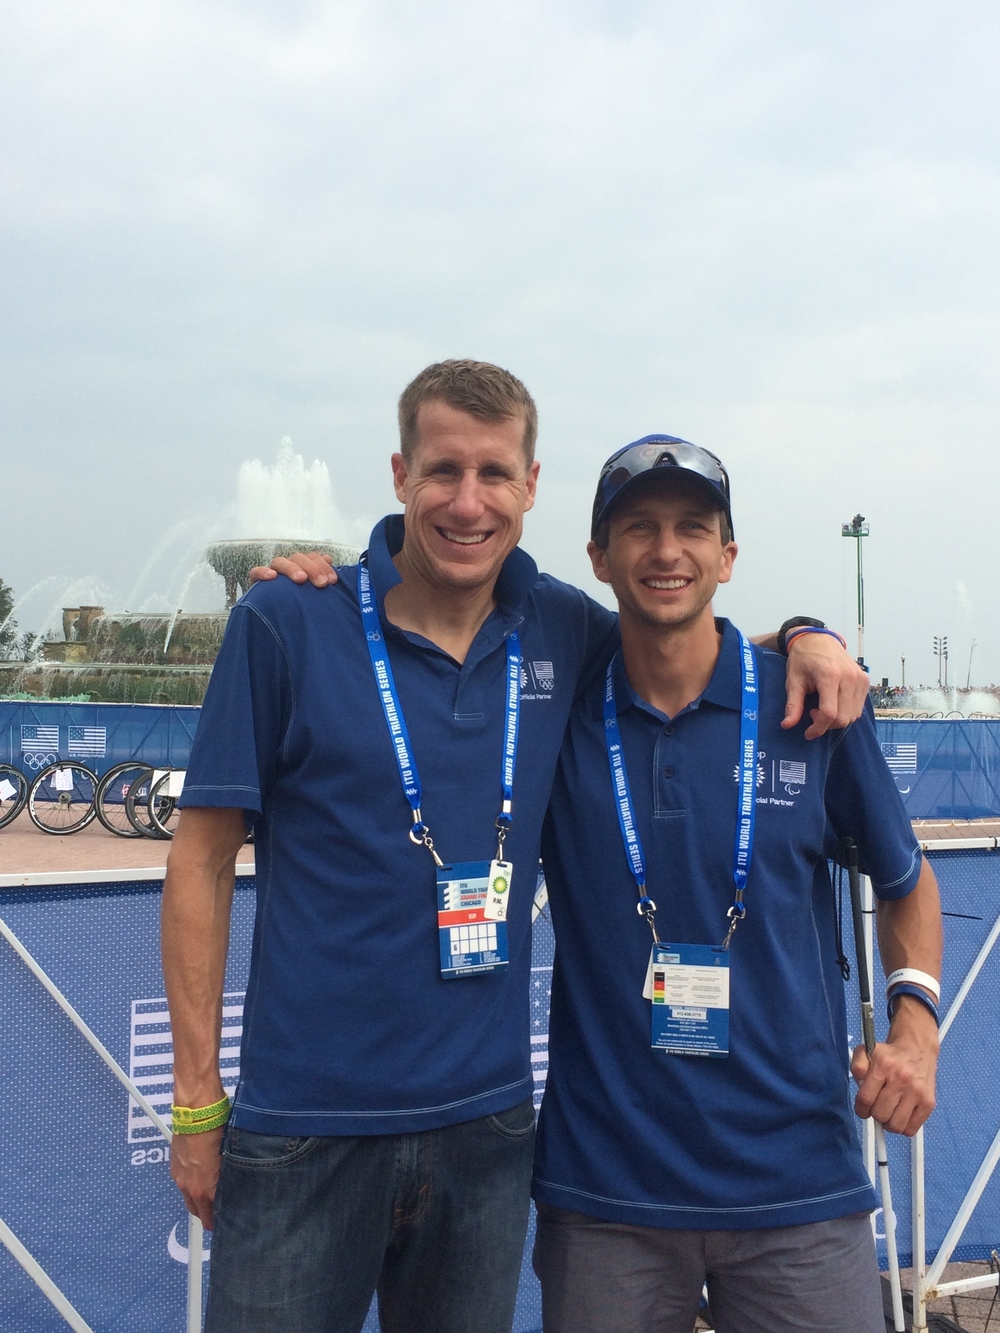 Hunter Kemper and I representing BP in Chicago at ITU World Championships 2015.